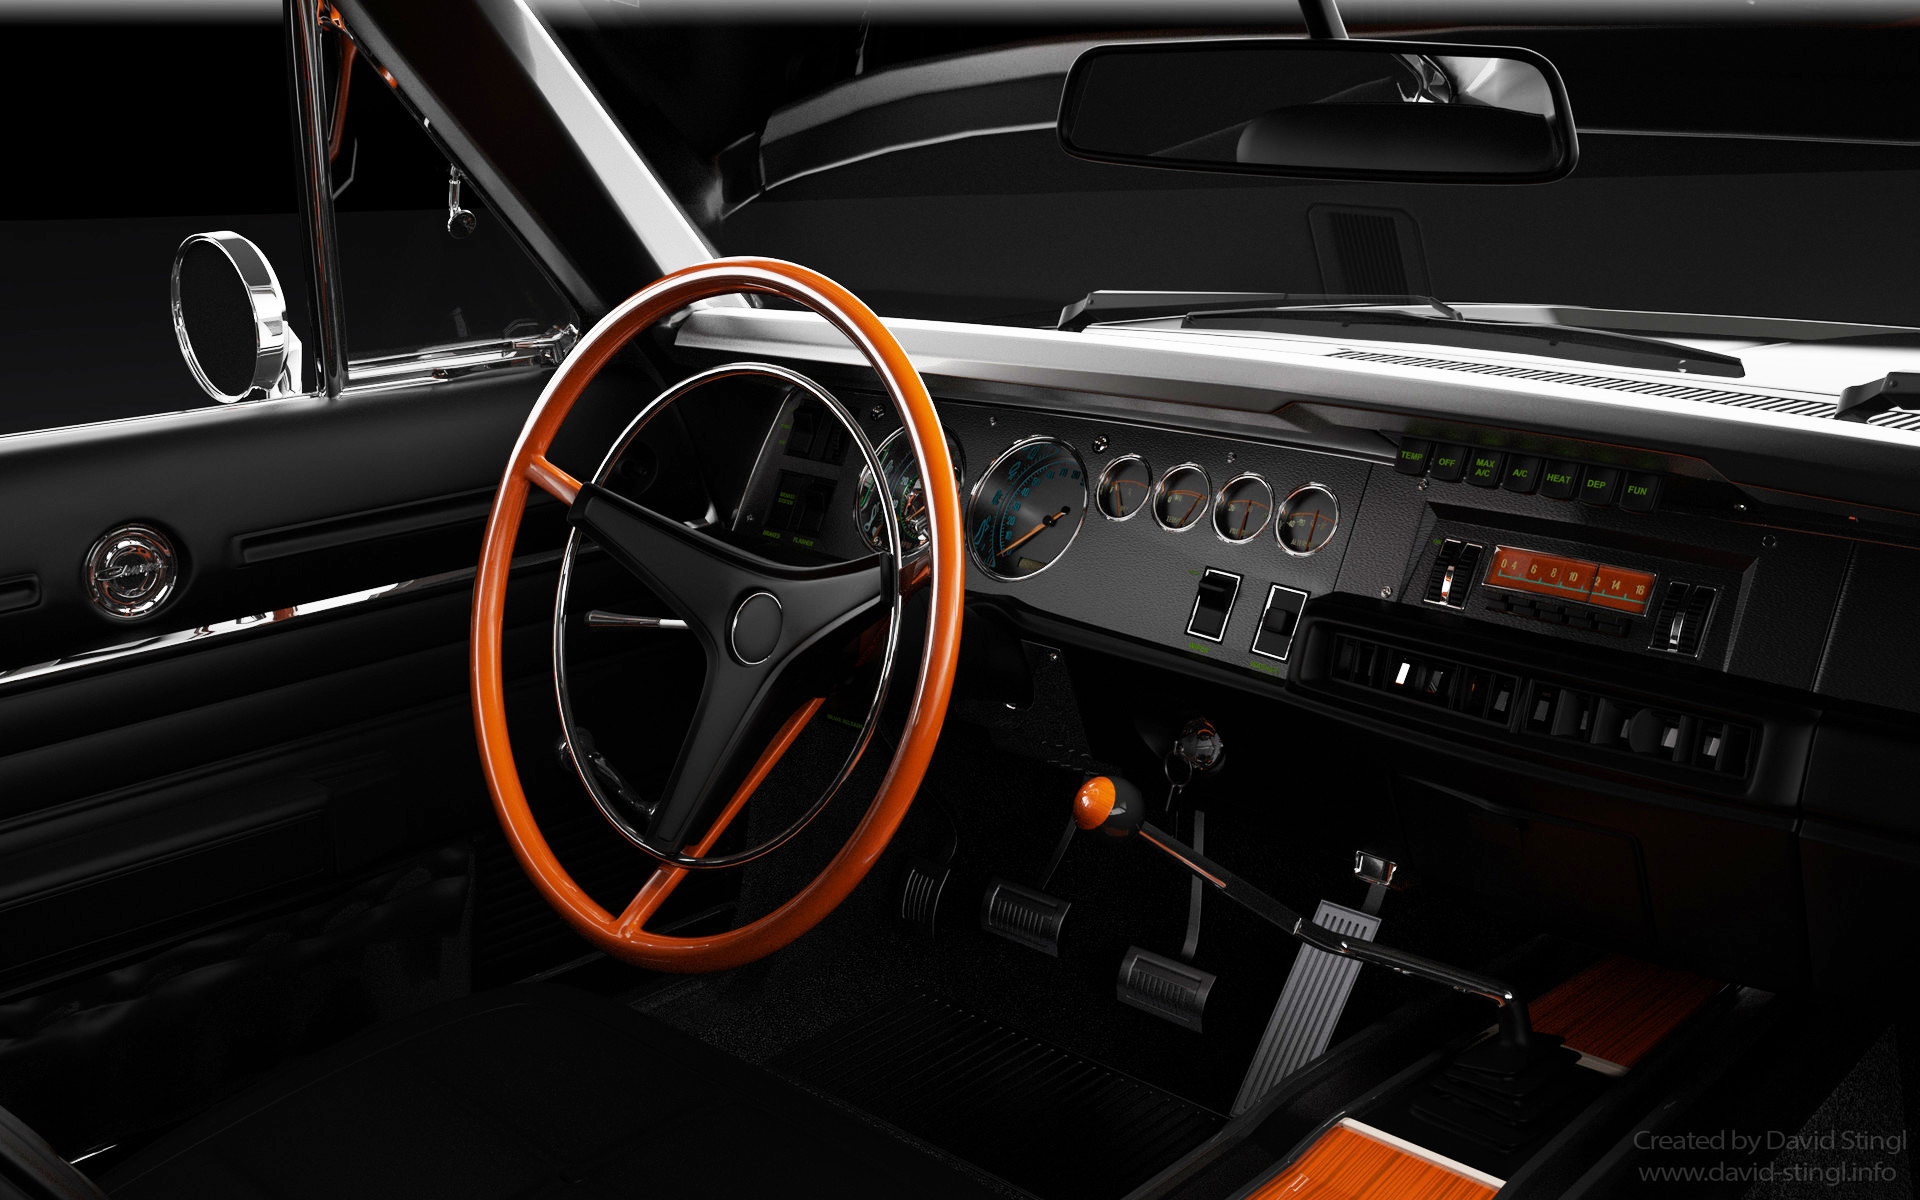 David stingl david stingl charger v367 interior 1